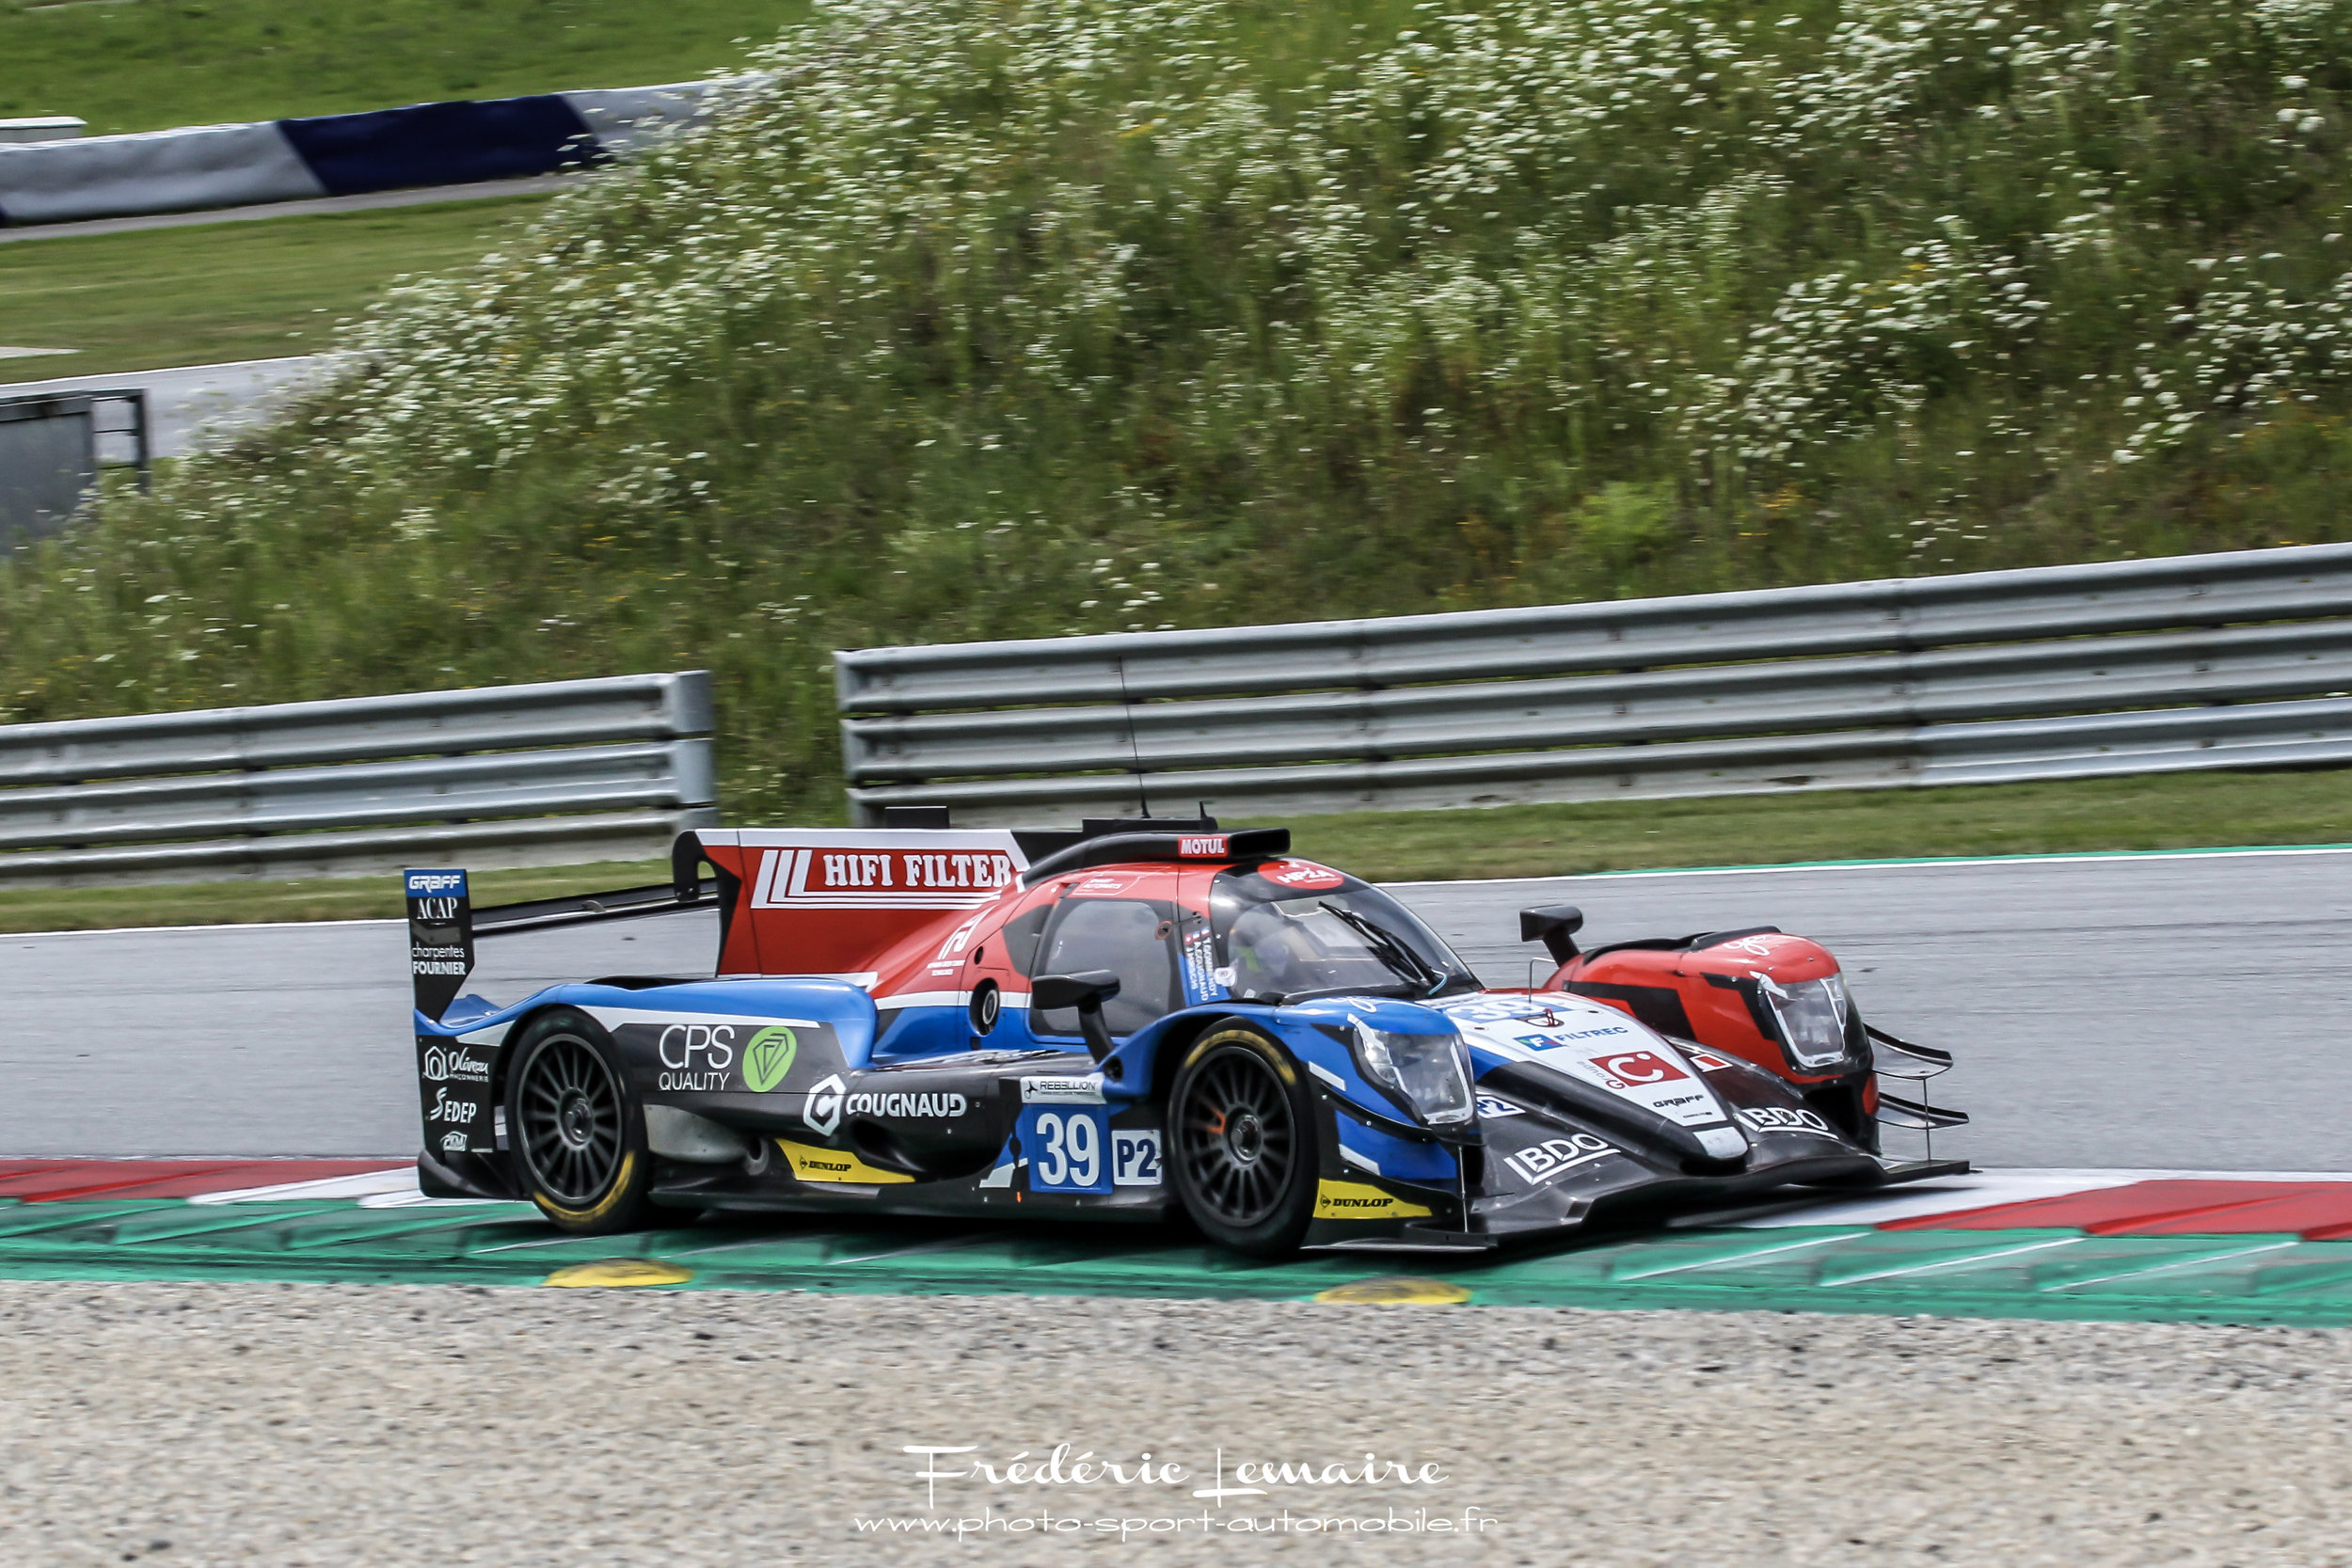 ORECA 07 - Chassis : Carbon monocoque and honeycombCrashbox : CarbonEngine : Gibson GK - 428 MAX Power : 603 bhpSuspension : Double wishbones with pushrodLength : 4650 mmWidth : 1895 mmWeight : 930 kgGearbox : Sequential 6 speeds steering wheel-mounted paddle shifts